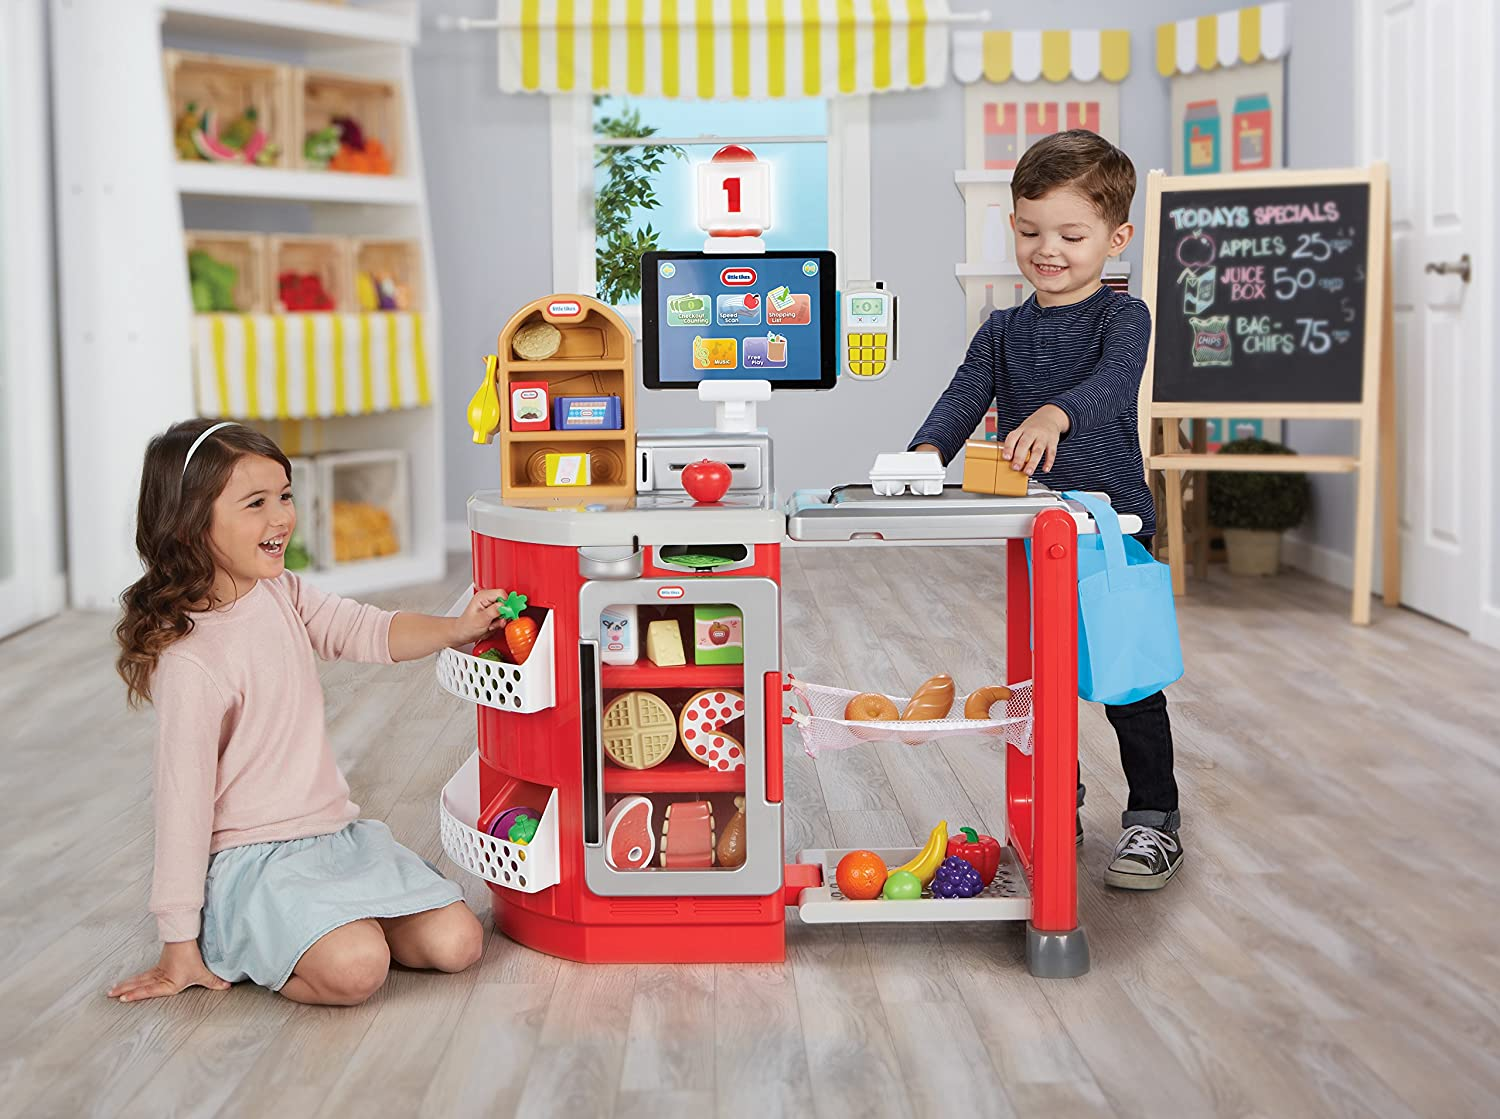 Top 10 Best Kids Cash Register Toys Reviews in 2021 19